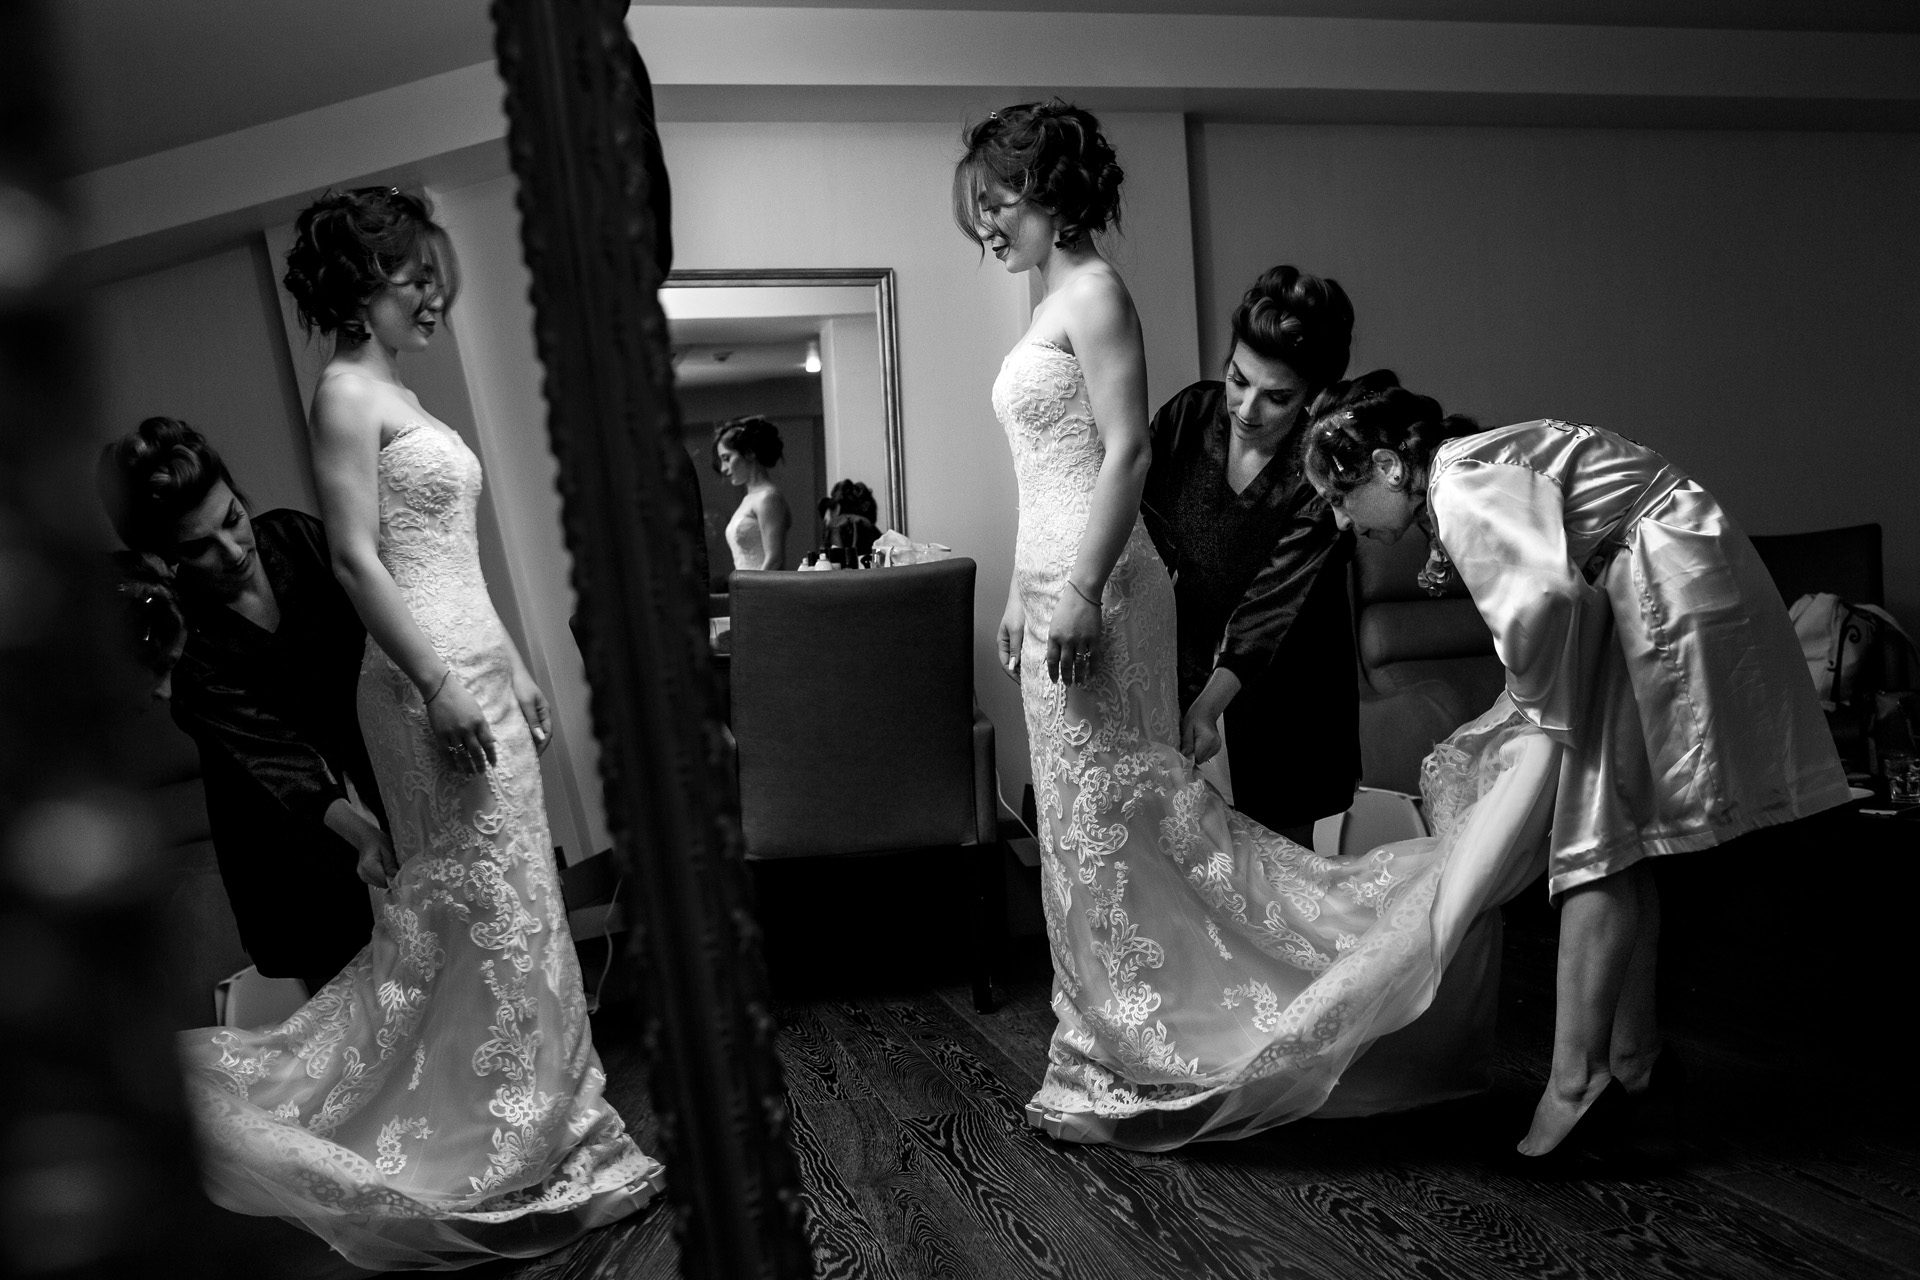 Wedding prep photography of the donning of the bridal gown.